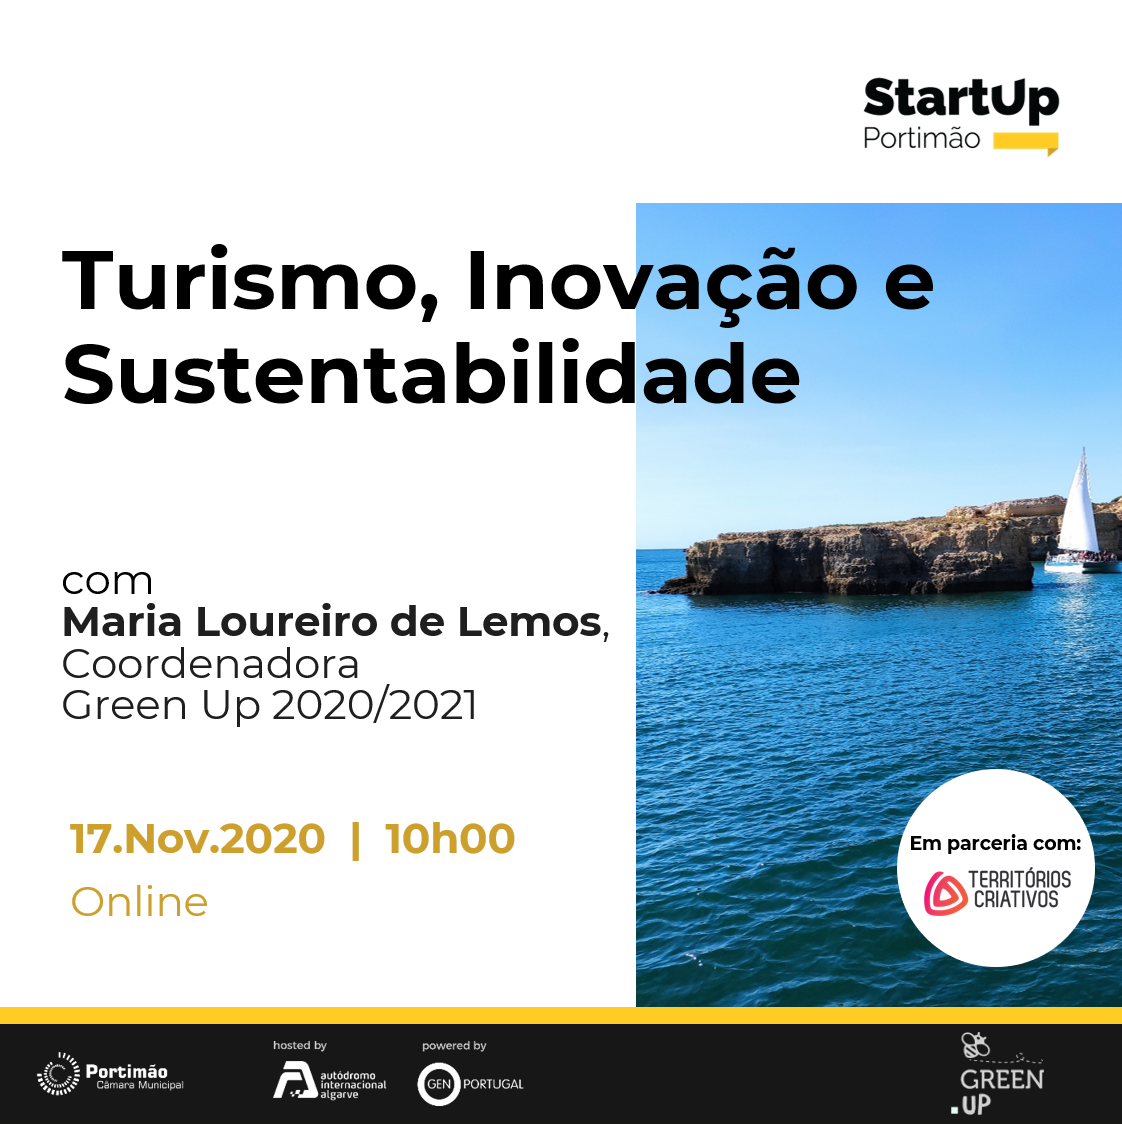 Tourism, Innovation and Sustainability